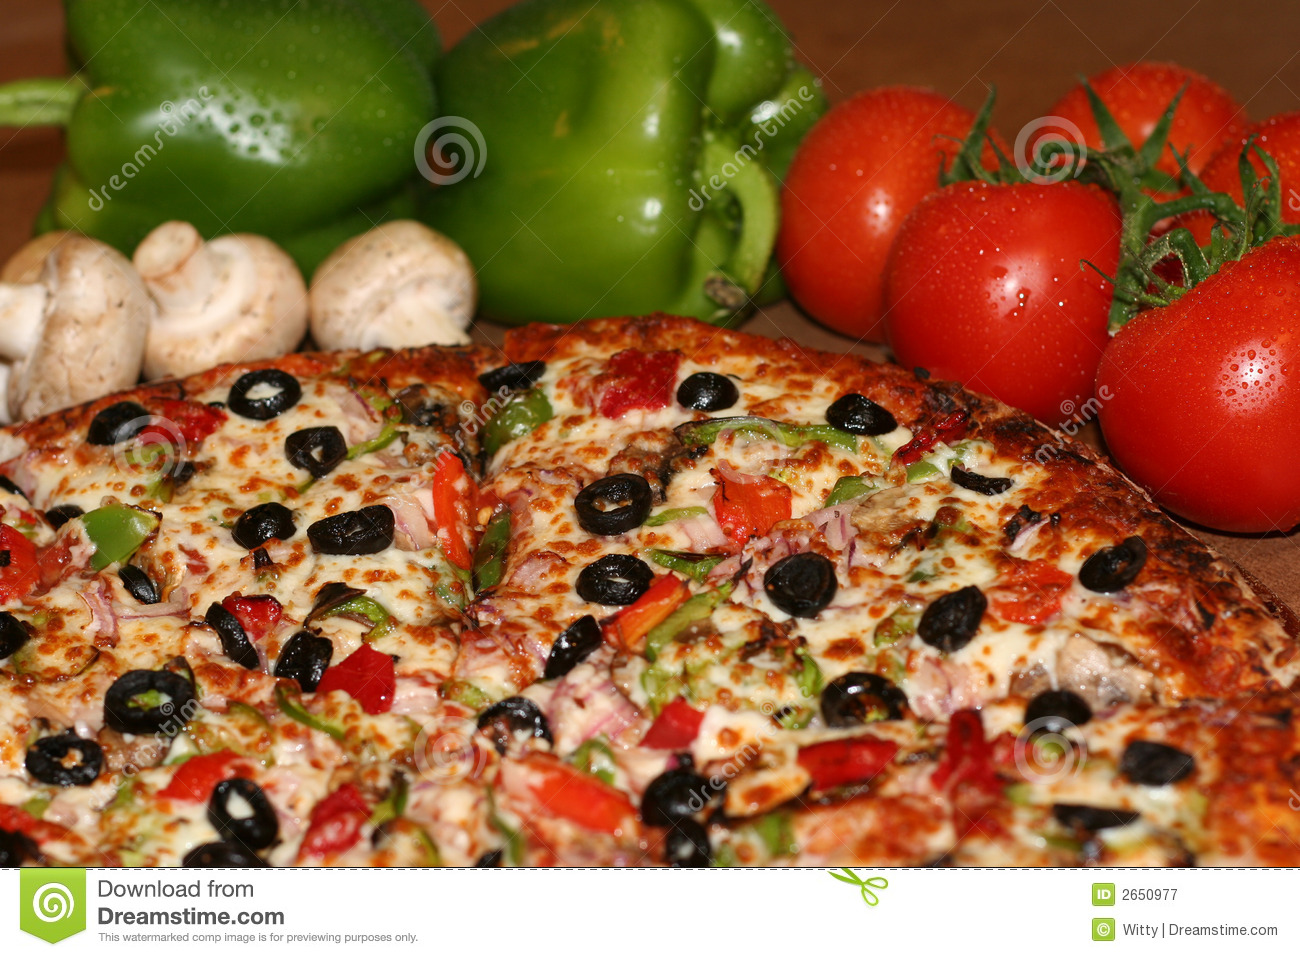 Pizza And Fresh Ingredients Stock Image - Image: 2650977